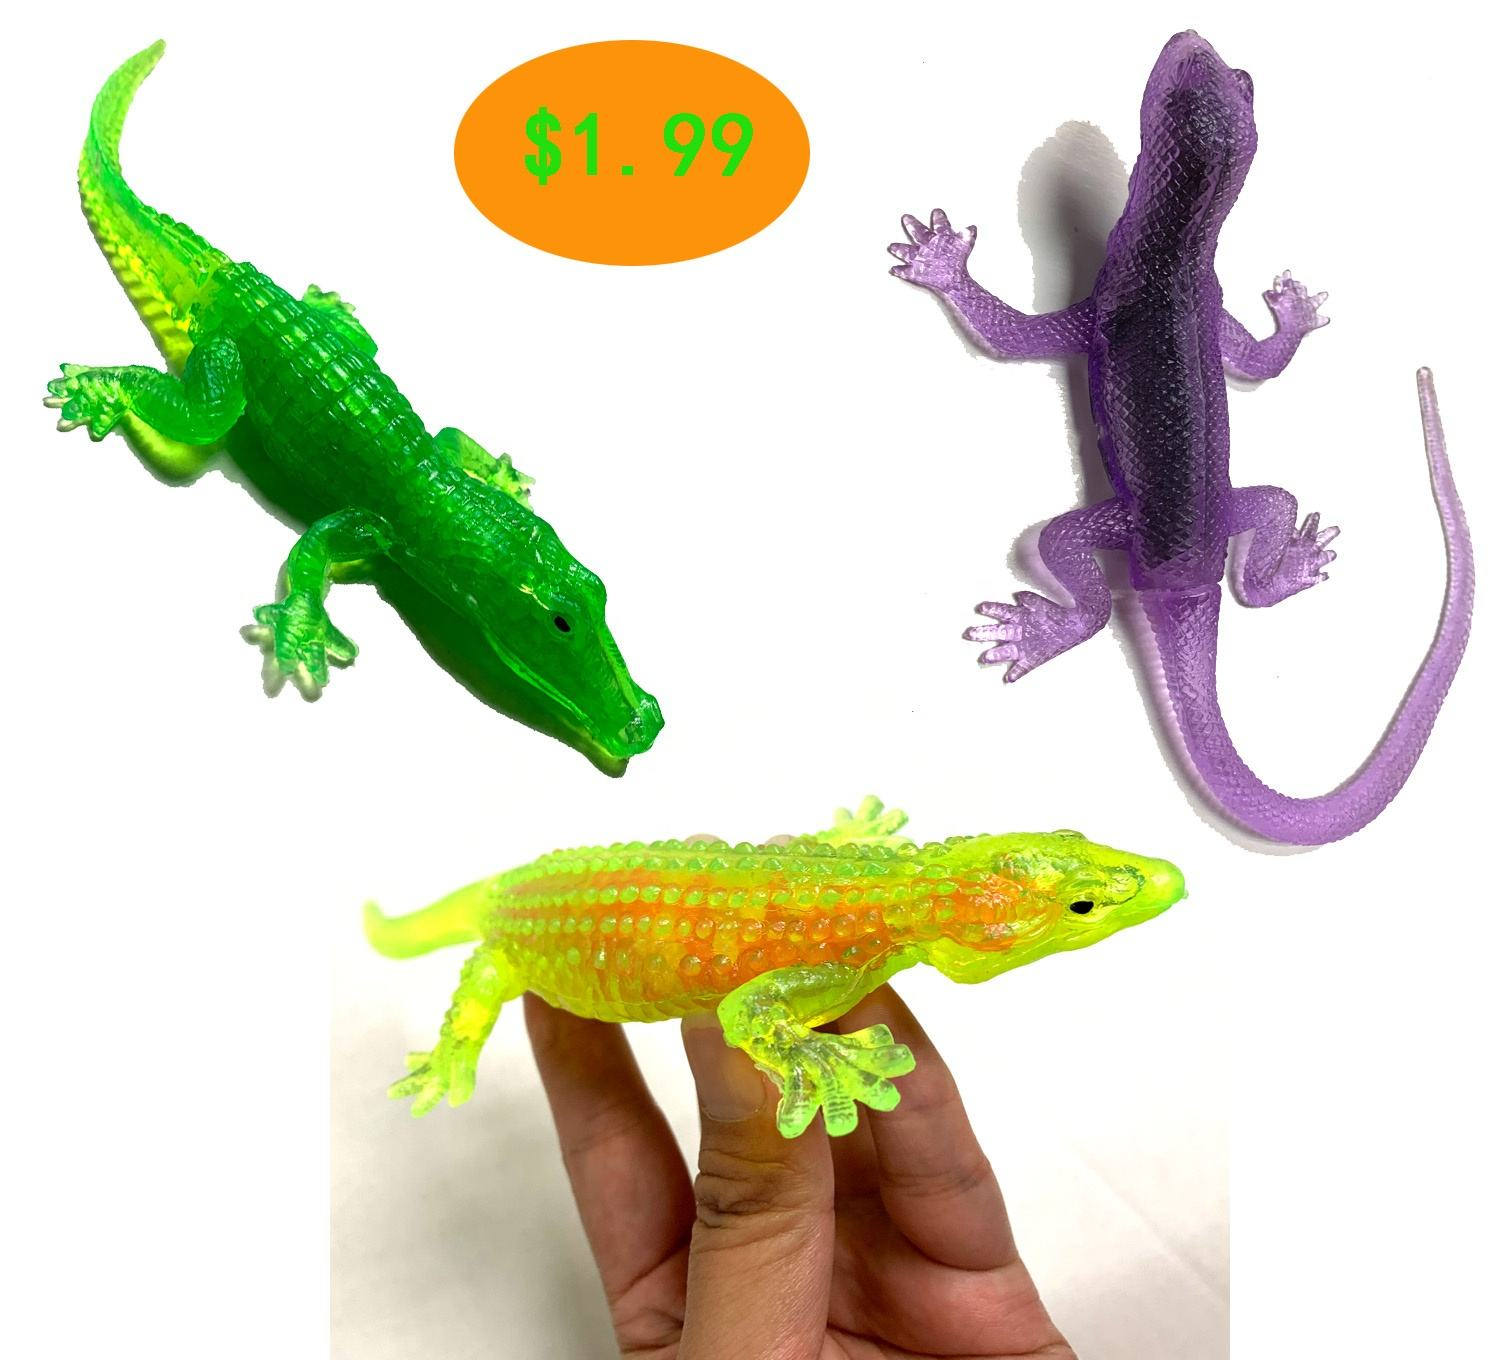 $1.99 realistic zoo animal toys